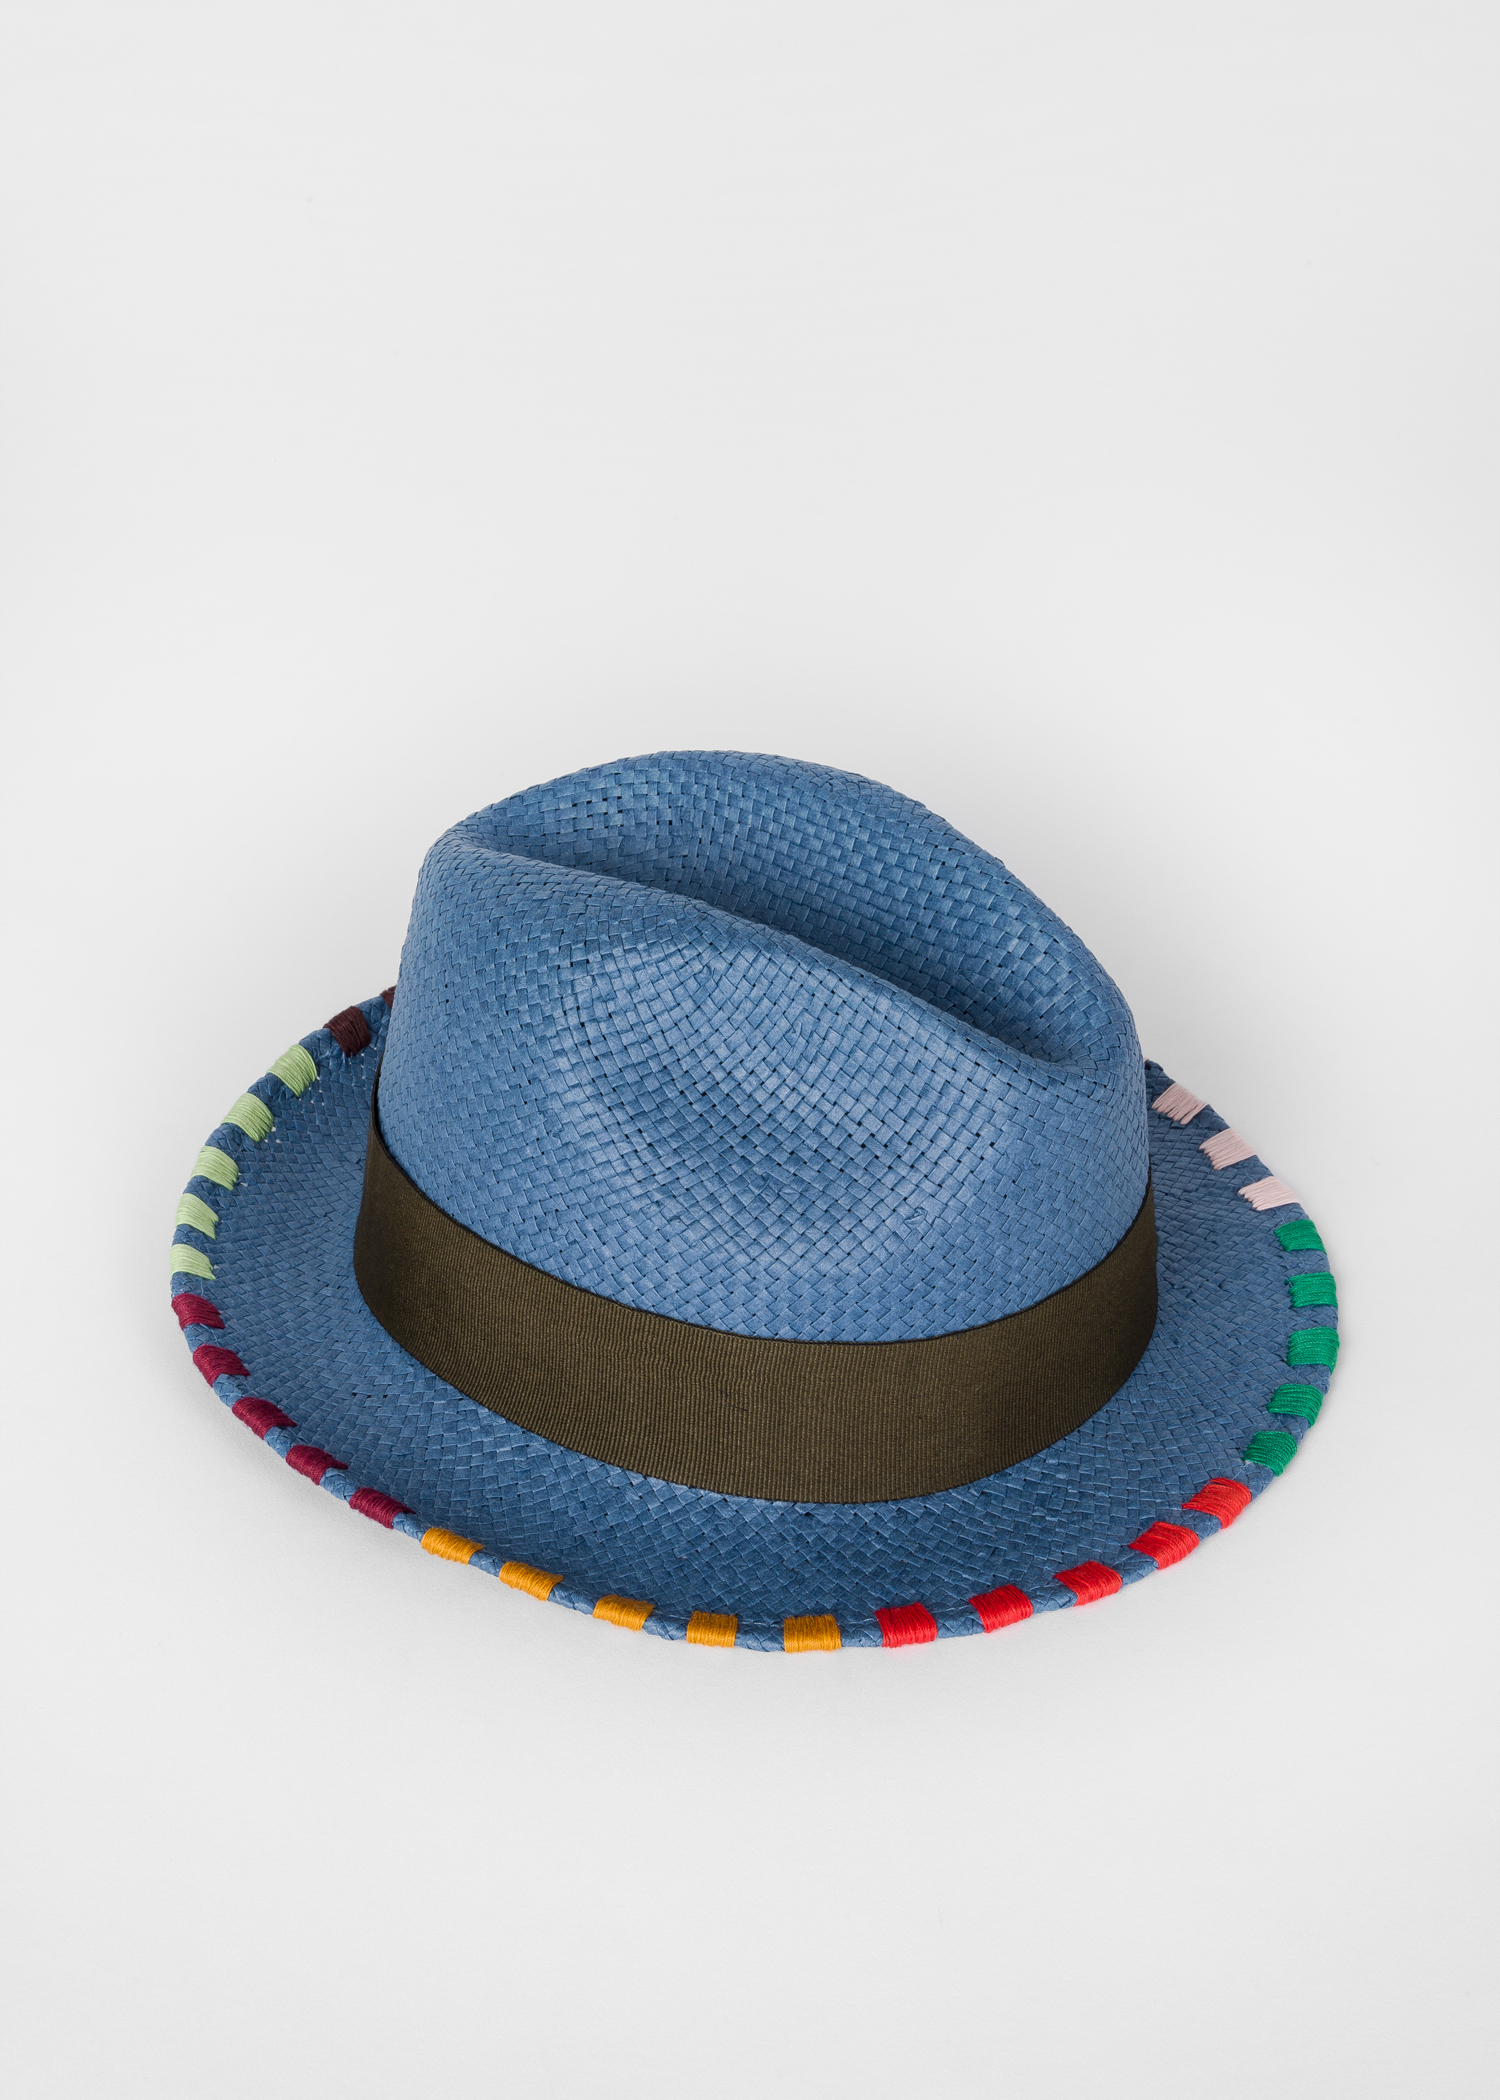 c1fb364309ed4 Angled View - Men s Slate Blue Woven Straw Fedora Hat With Multi-Coloured  Stitching Paul